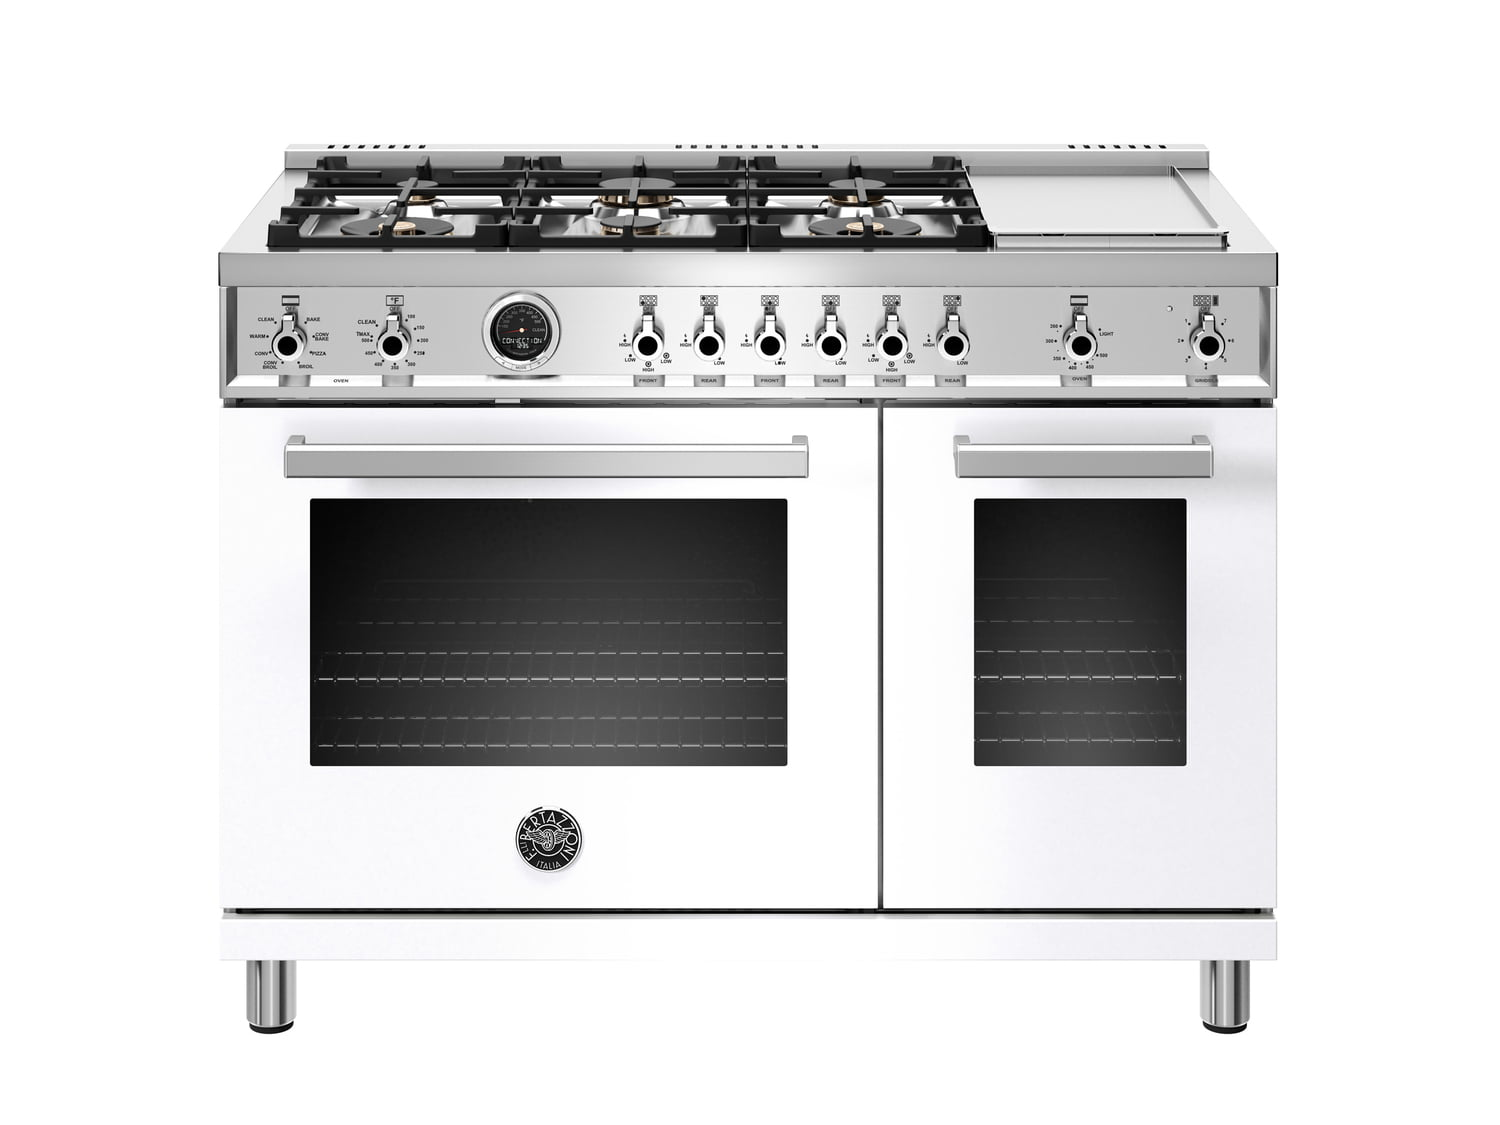 Load image into Gallery viewer, Bertazzoni PROF486GDFSBIT 48 Inch Dual Fuel Range, 6 Brass Burners And Griddle , Electric Self Clean Oven Bianco